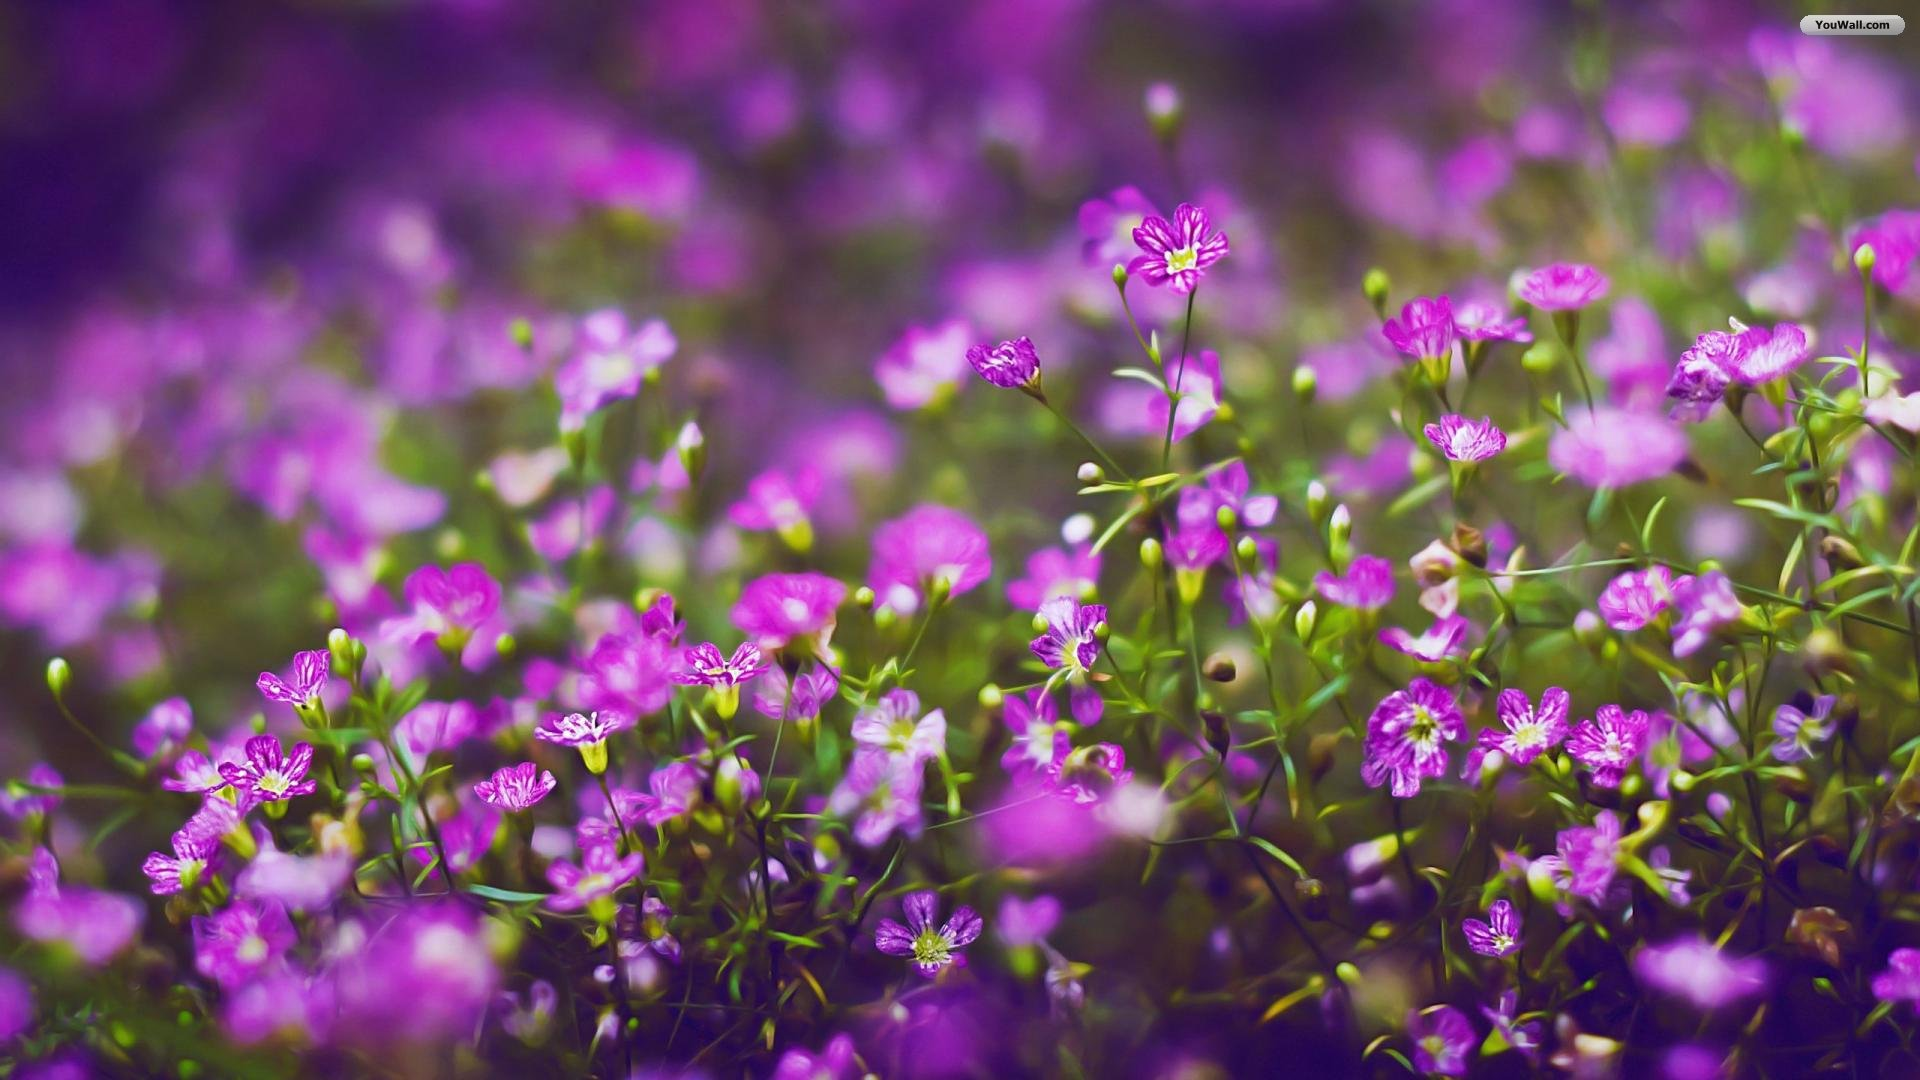 Violet Flower Wallpapers Posted By Ryan Cunningham